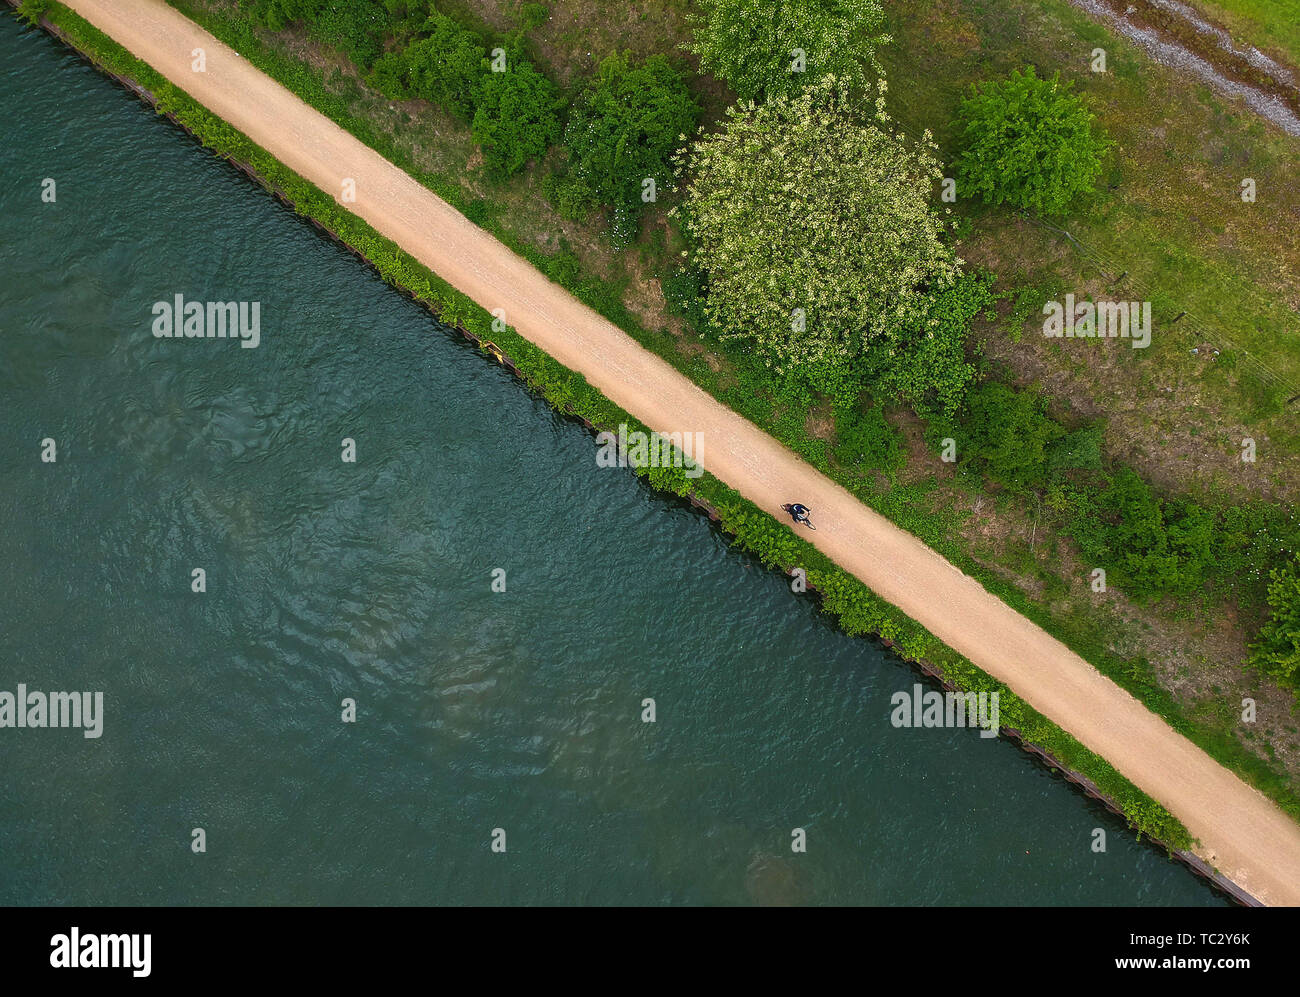 Beijing, China. 10th May, 2019. Aerial photo taken on May 10, 2019 shows a citizen riding beside the Emscher River in Essen, Germany. Credit: Lu Yang/Xinhua/Alamy Live News Stock Photo